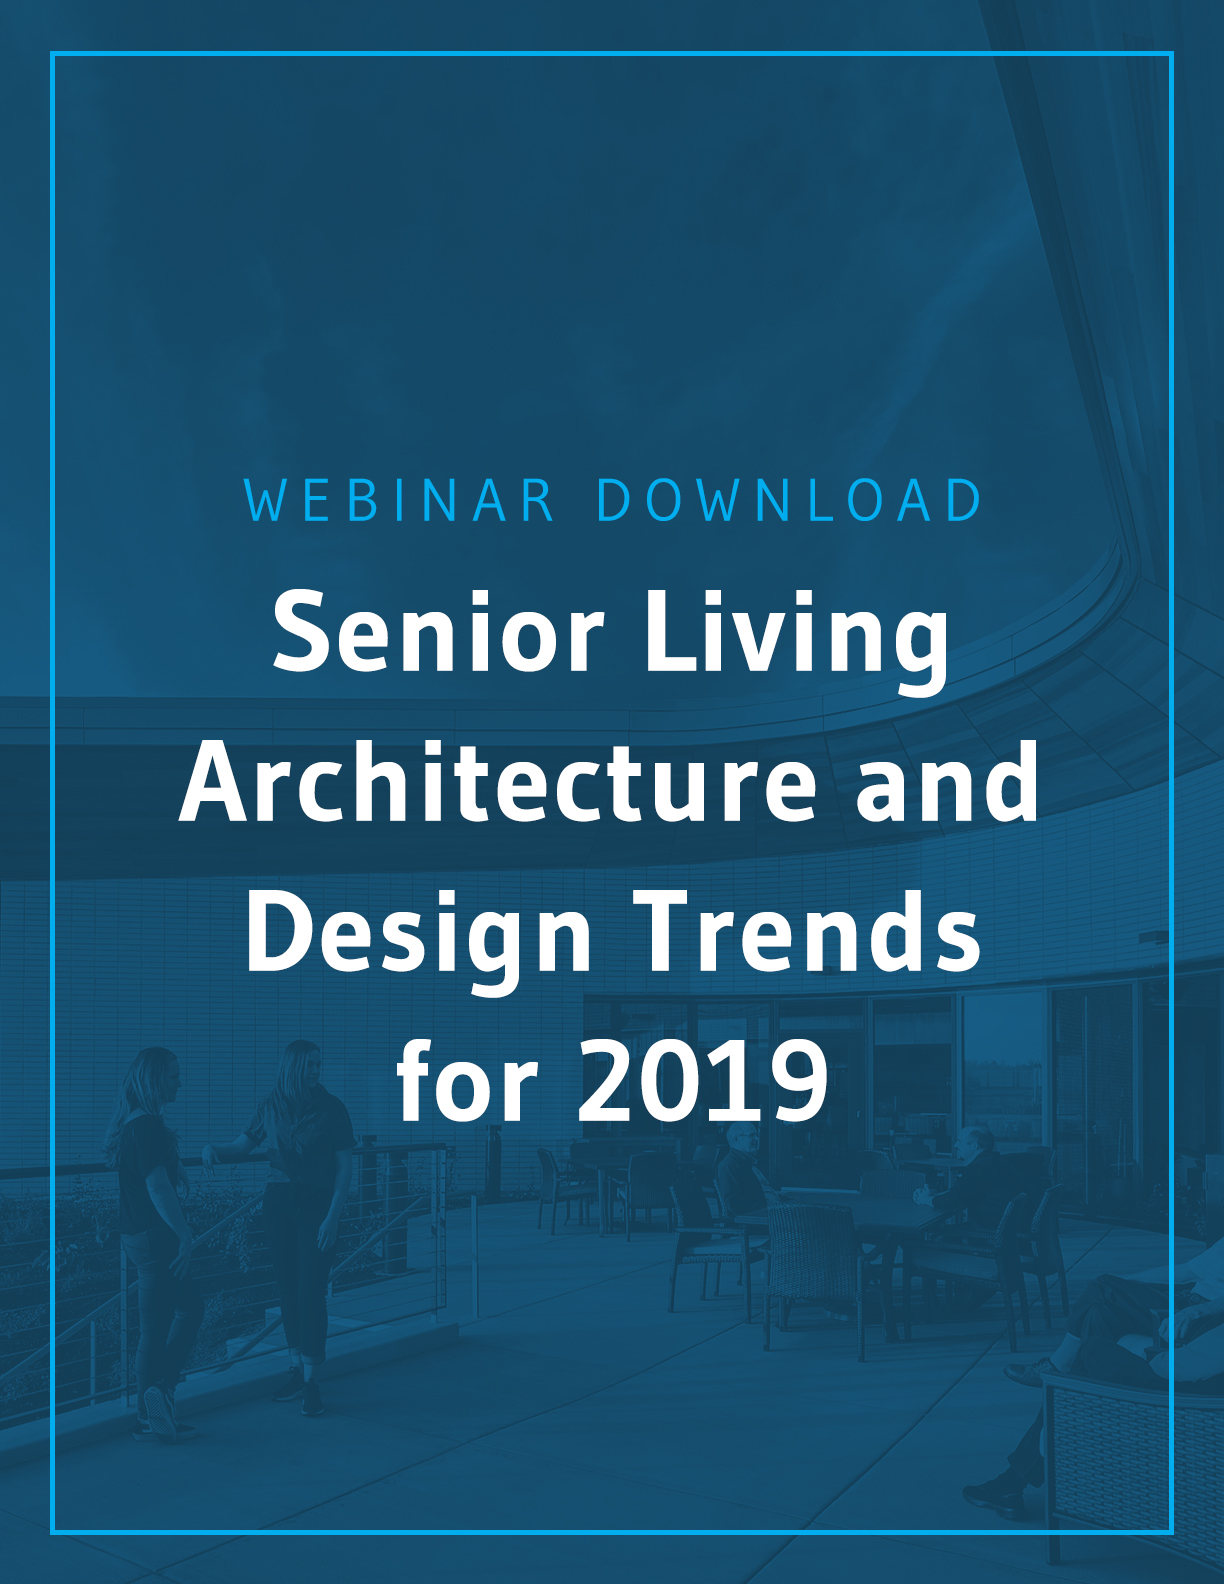 Senior Living Architecture and Design Trends for 2019